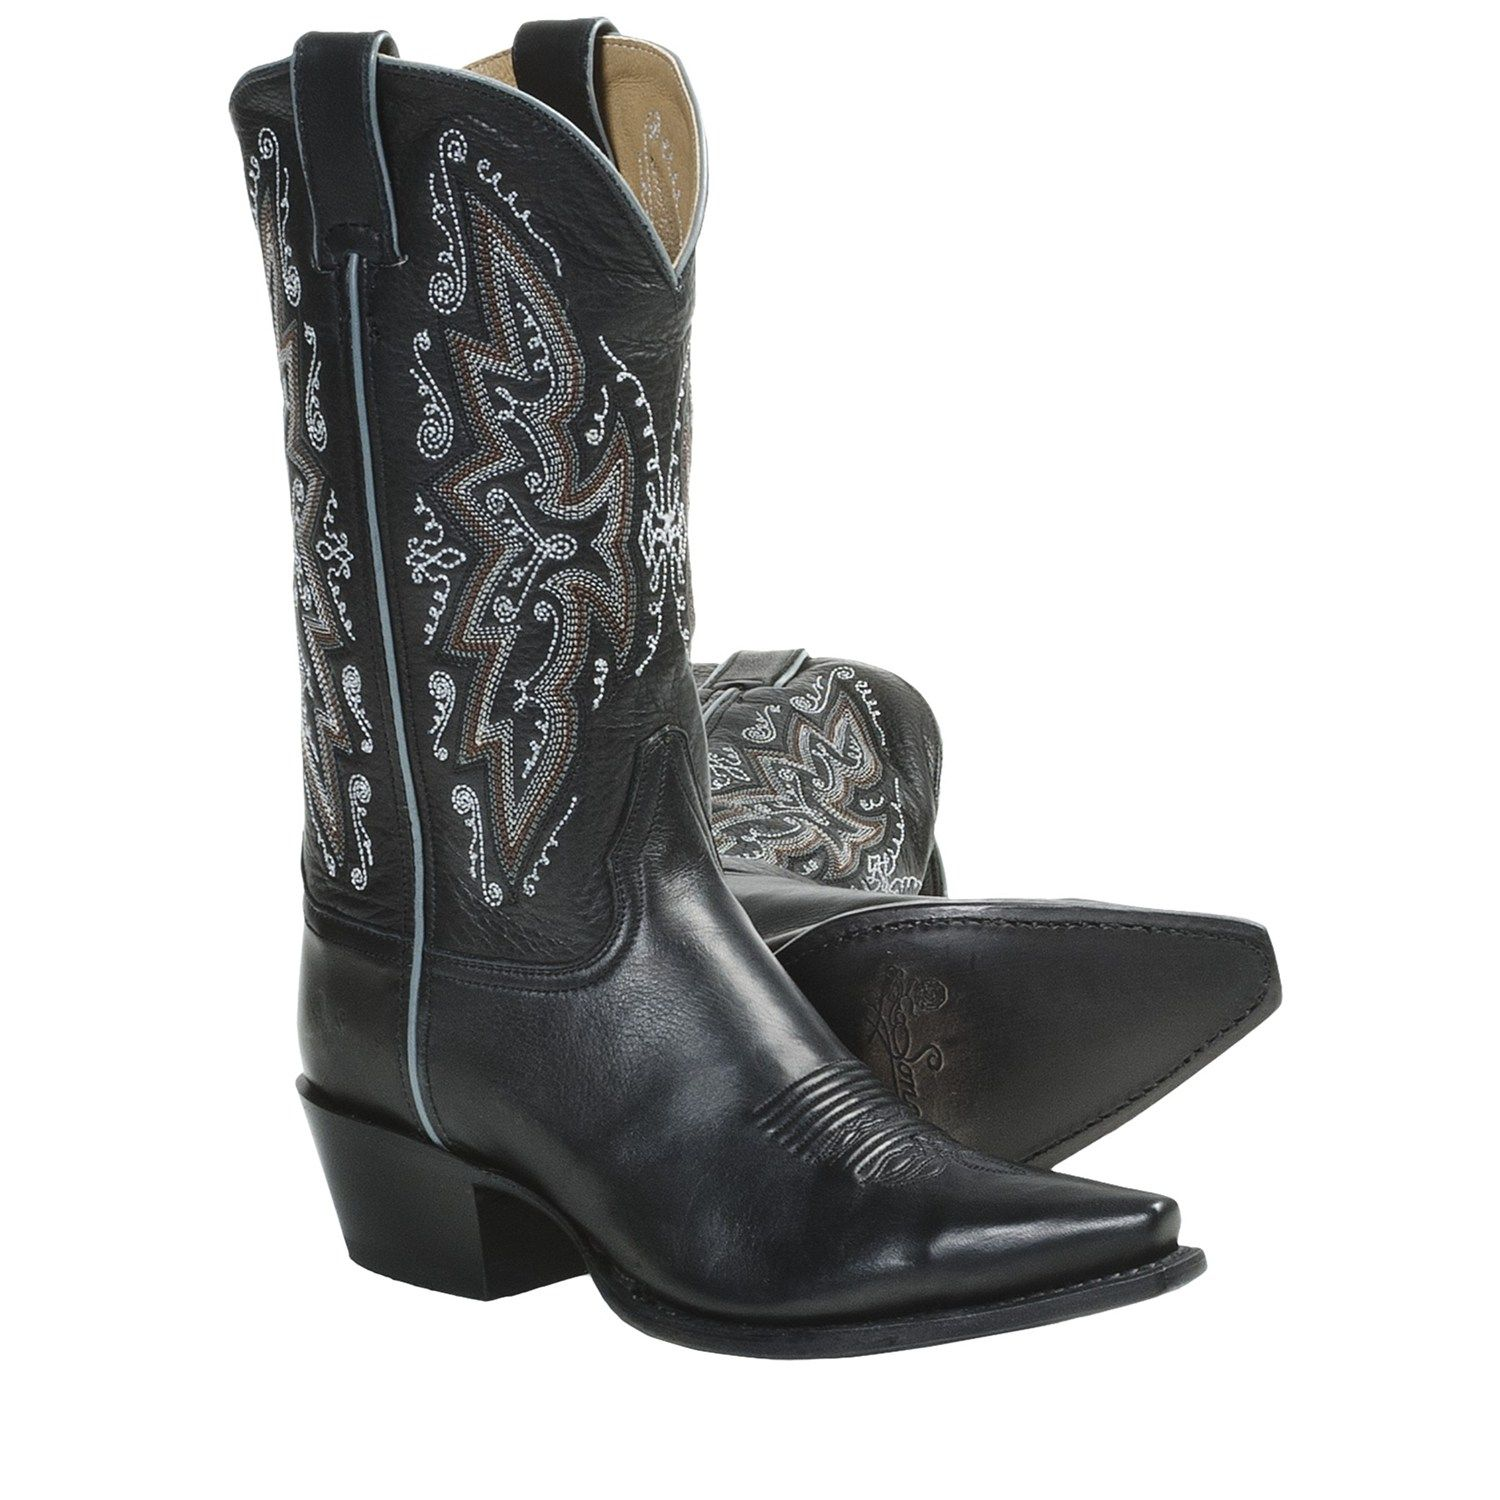 womens cowgirl boots 24 - #shoes #cuteshoes | Shoes | Pinterest ...